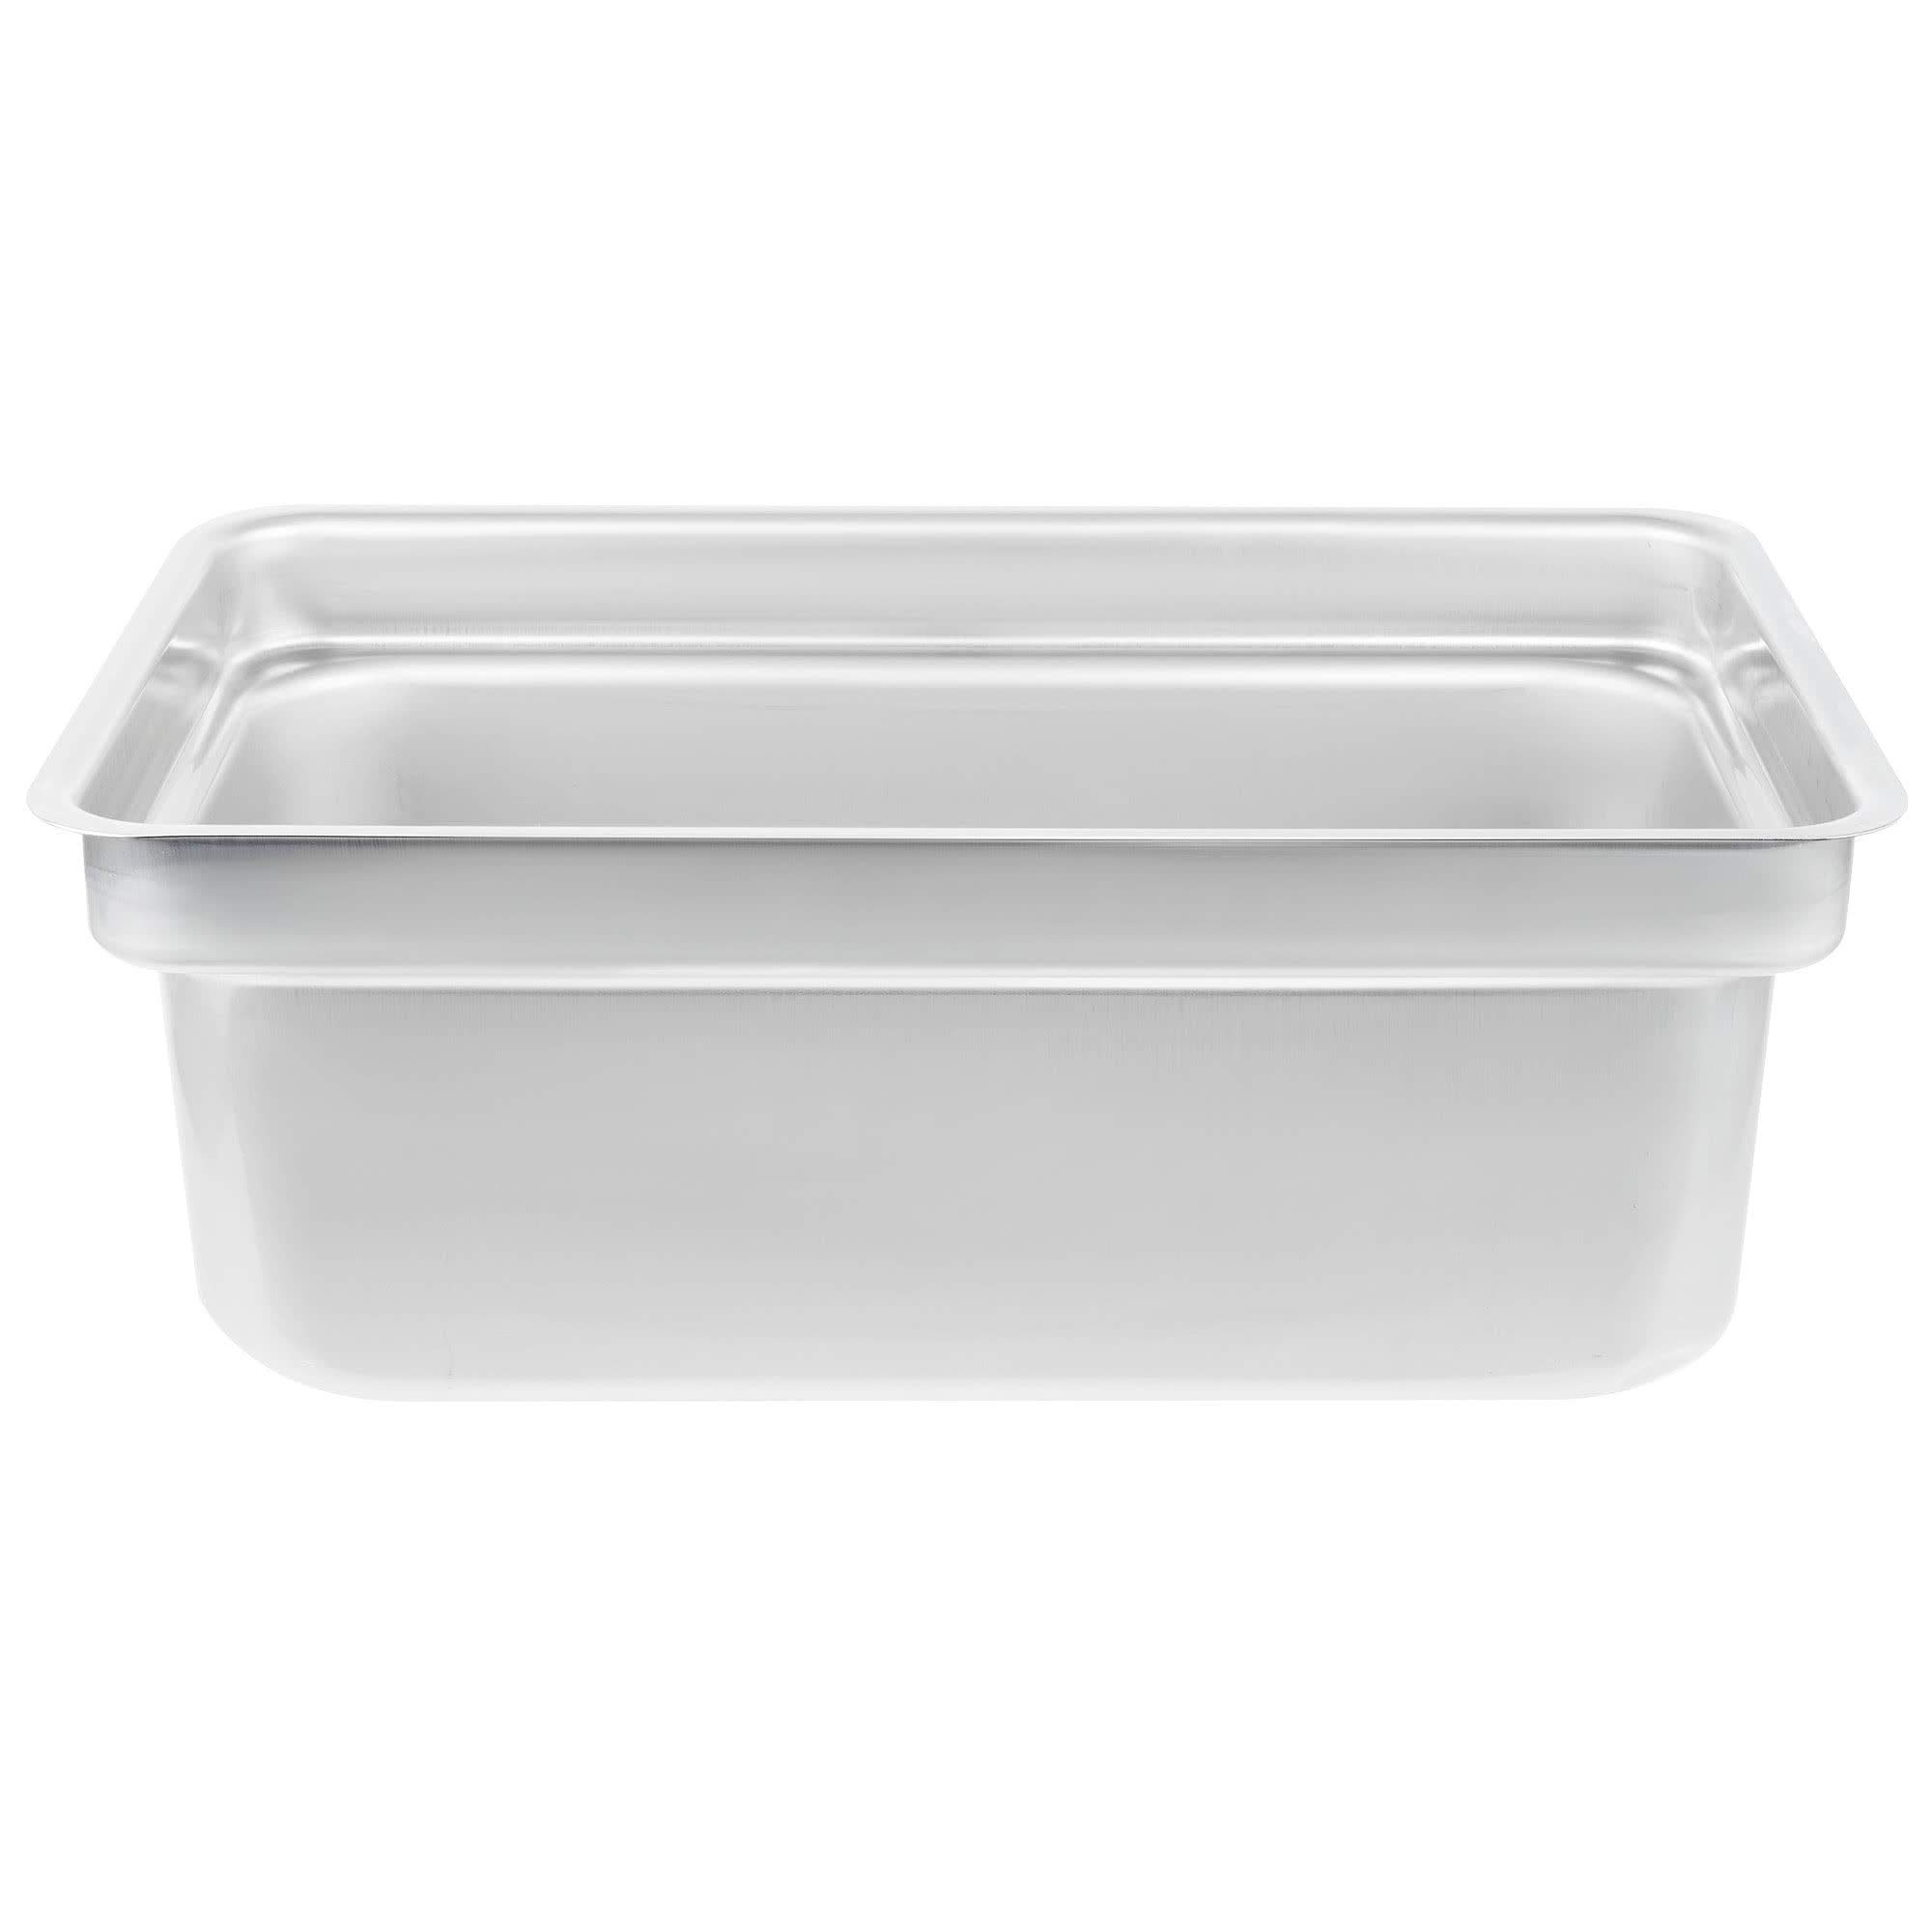 TableTop King S2028D Super Pan Heavy-Duty Full Size Offset Shoulder Anti-Jam Stainless Steel Steam Table/Hotel Pan - 8'' Deep by TableTop King